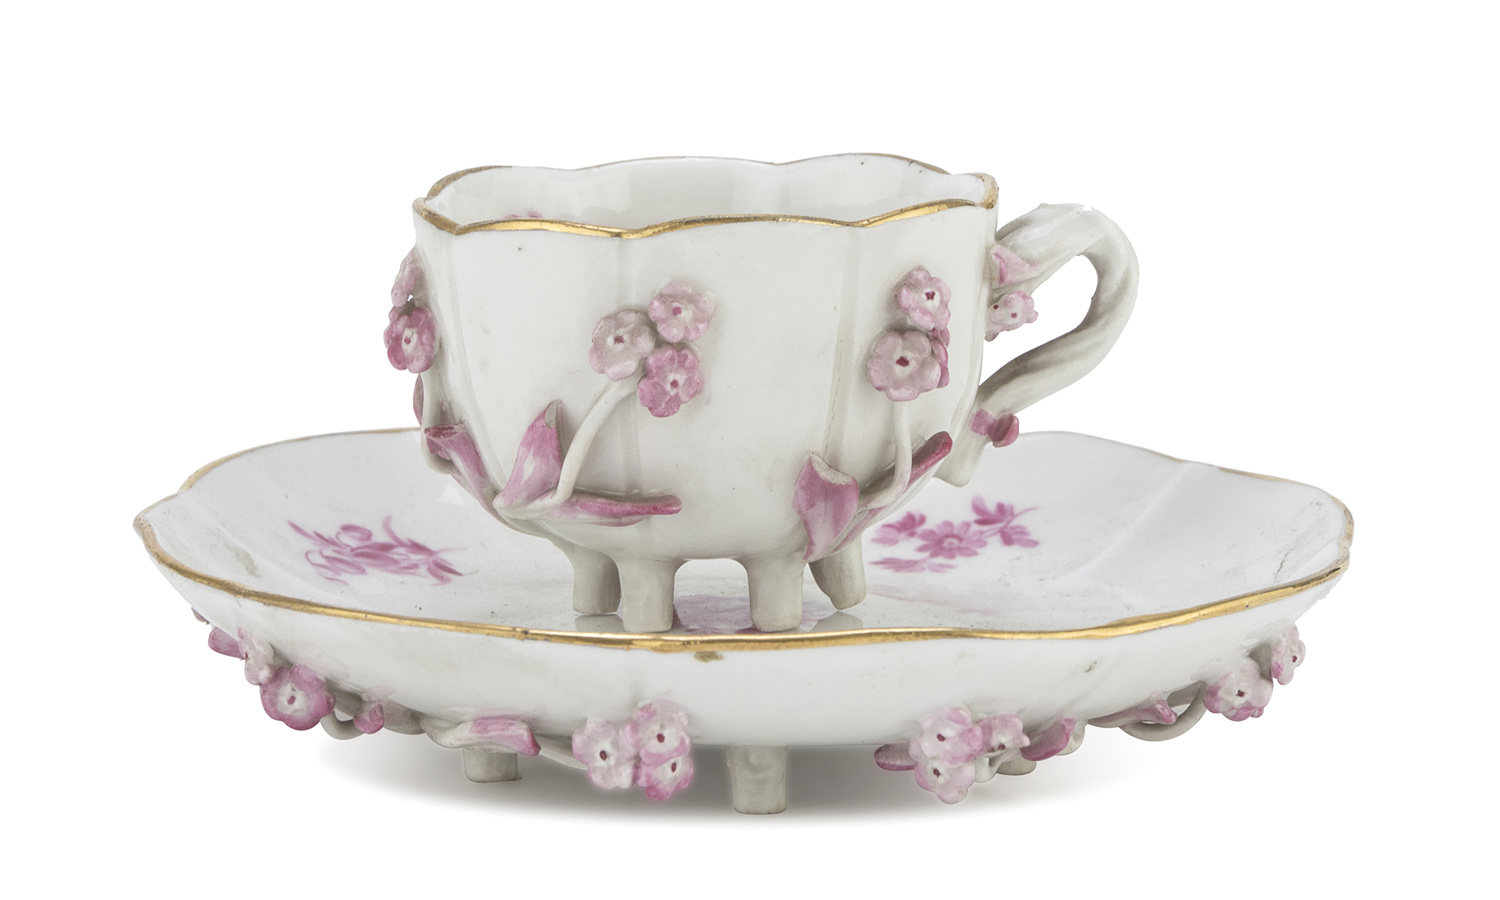 PORCELAIN CUP AND SAUCER PROBABLY PARIS LATE 19th CENTURY